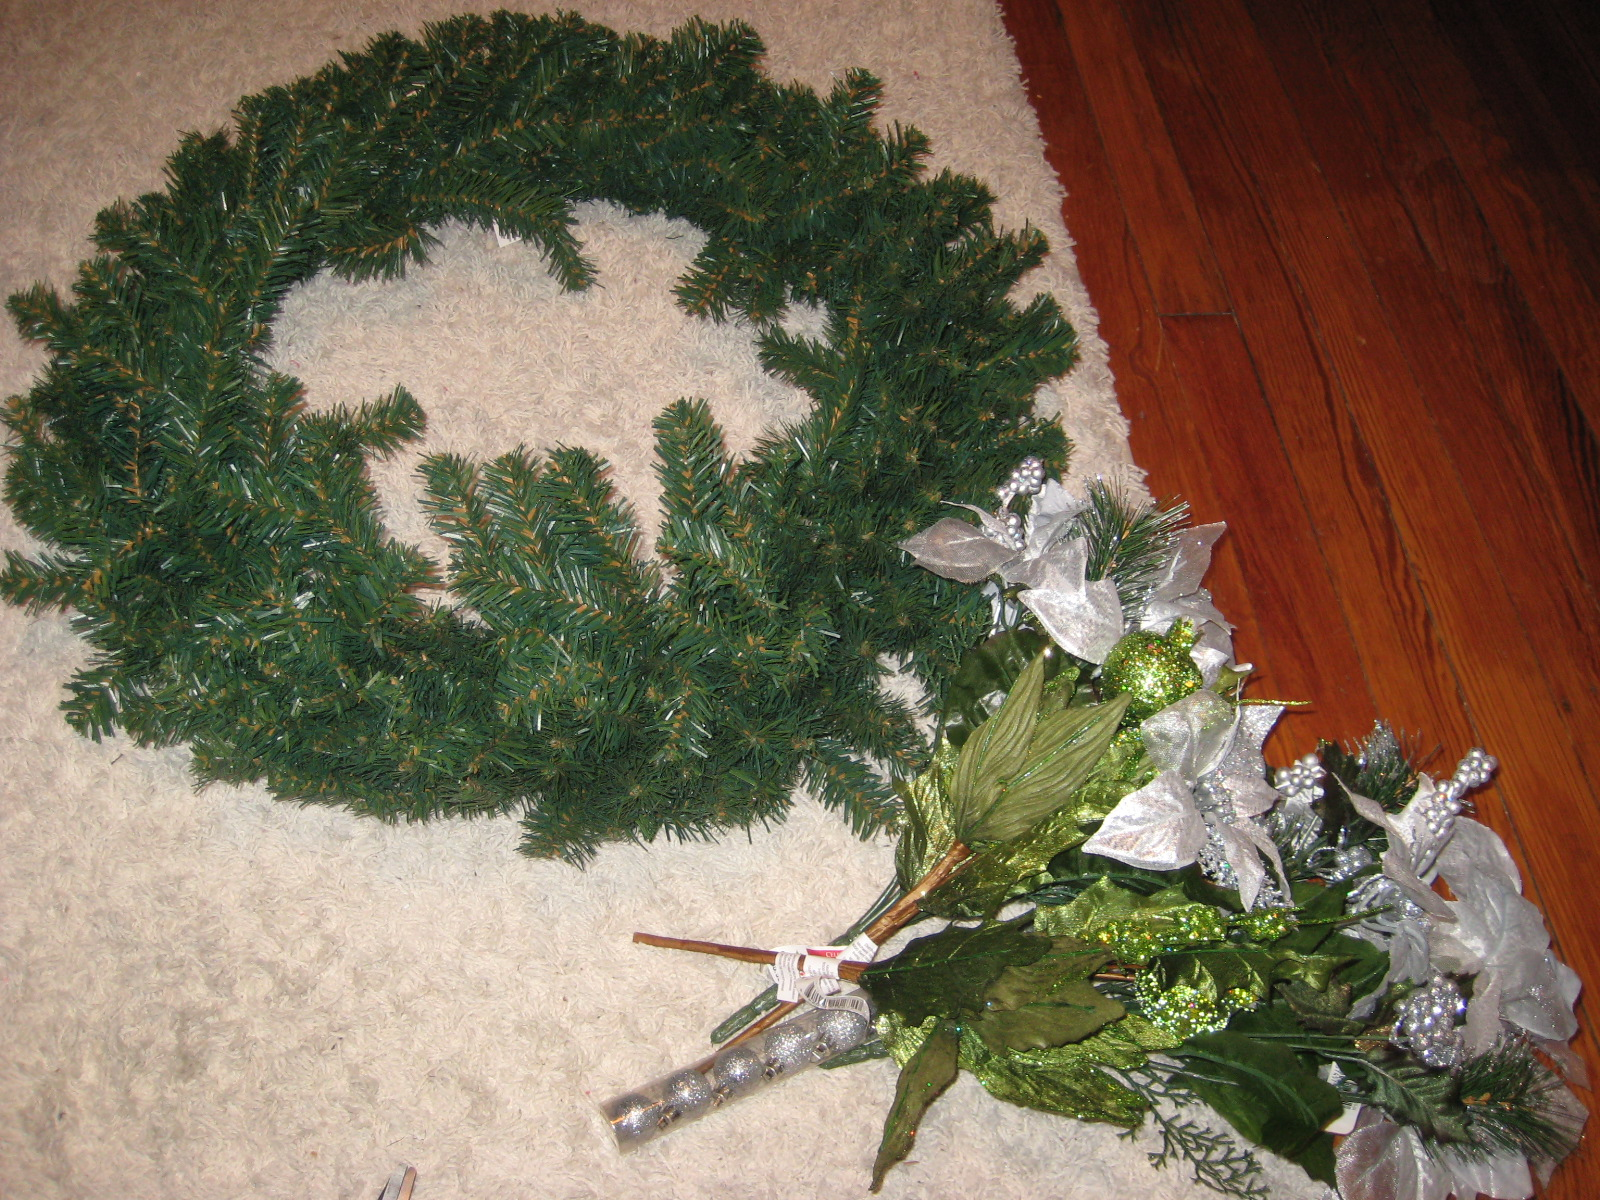 For all things creative diy christmas wreath first cut all your flowers off the bunch and put in a pile 2 cut off a good length of green florist wire and wrap it around the base of your mightylinksfo